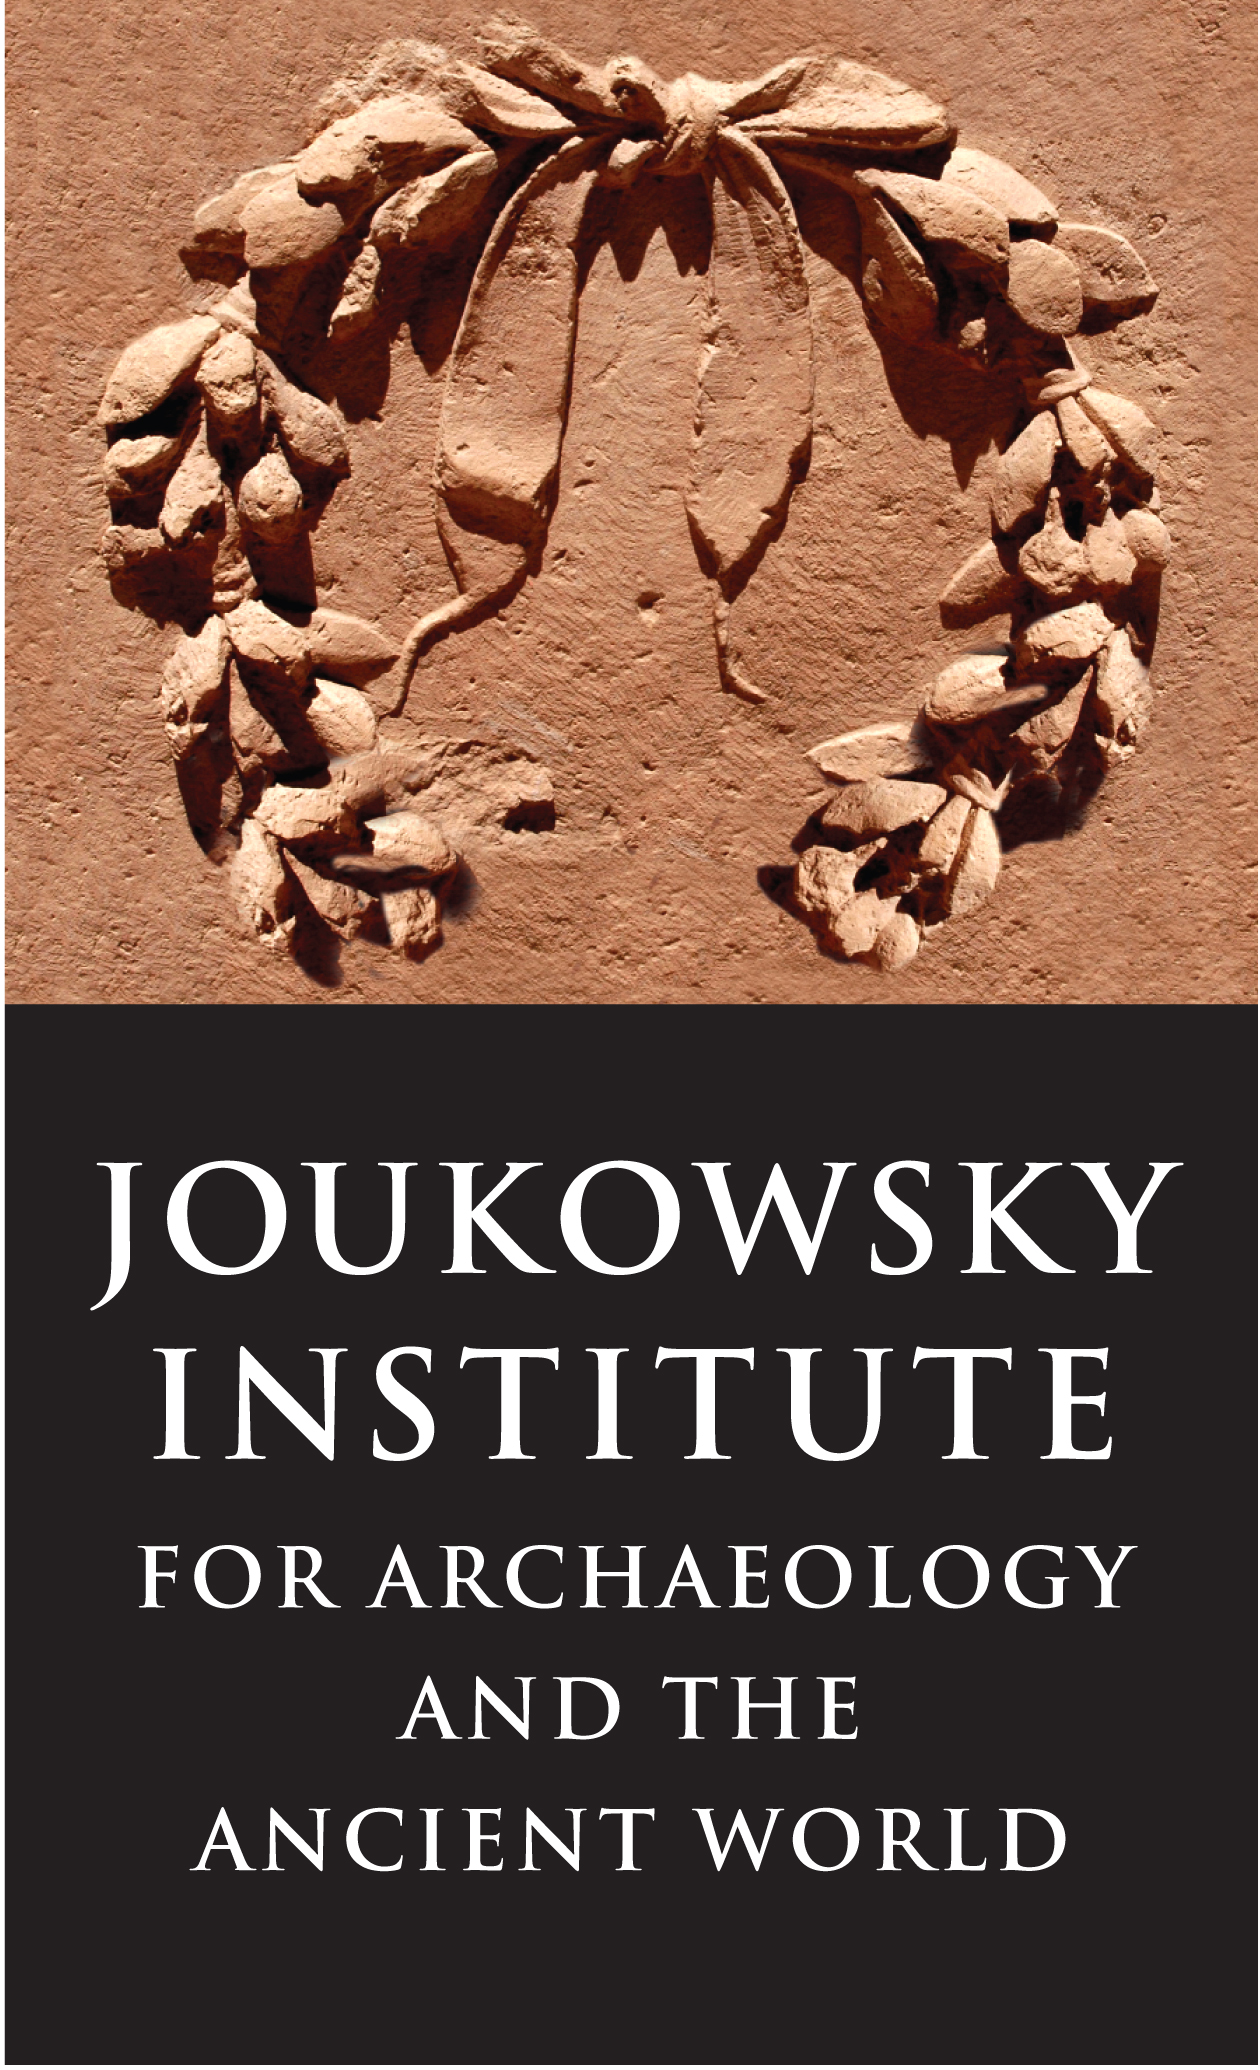 Joukowsky Institute